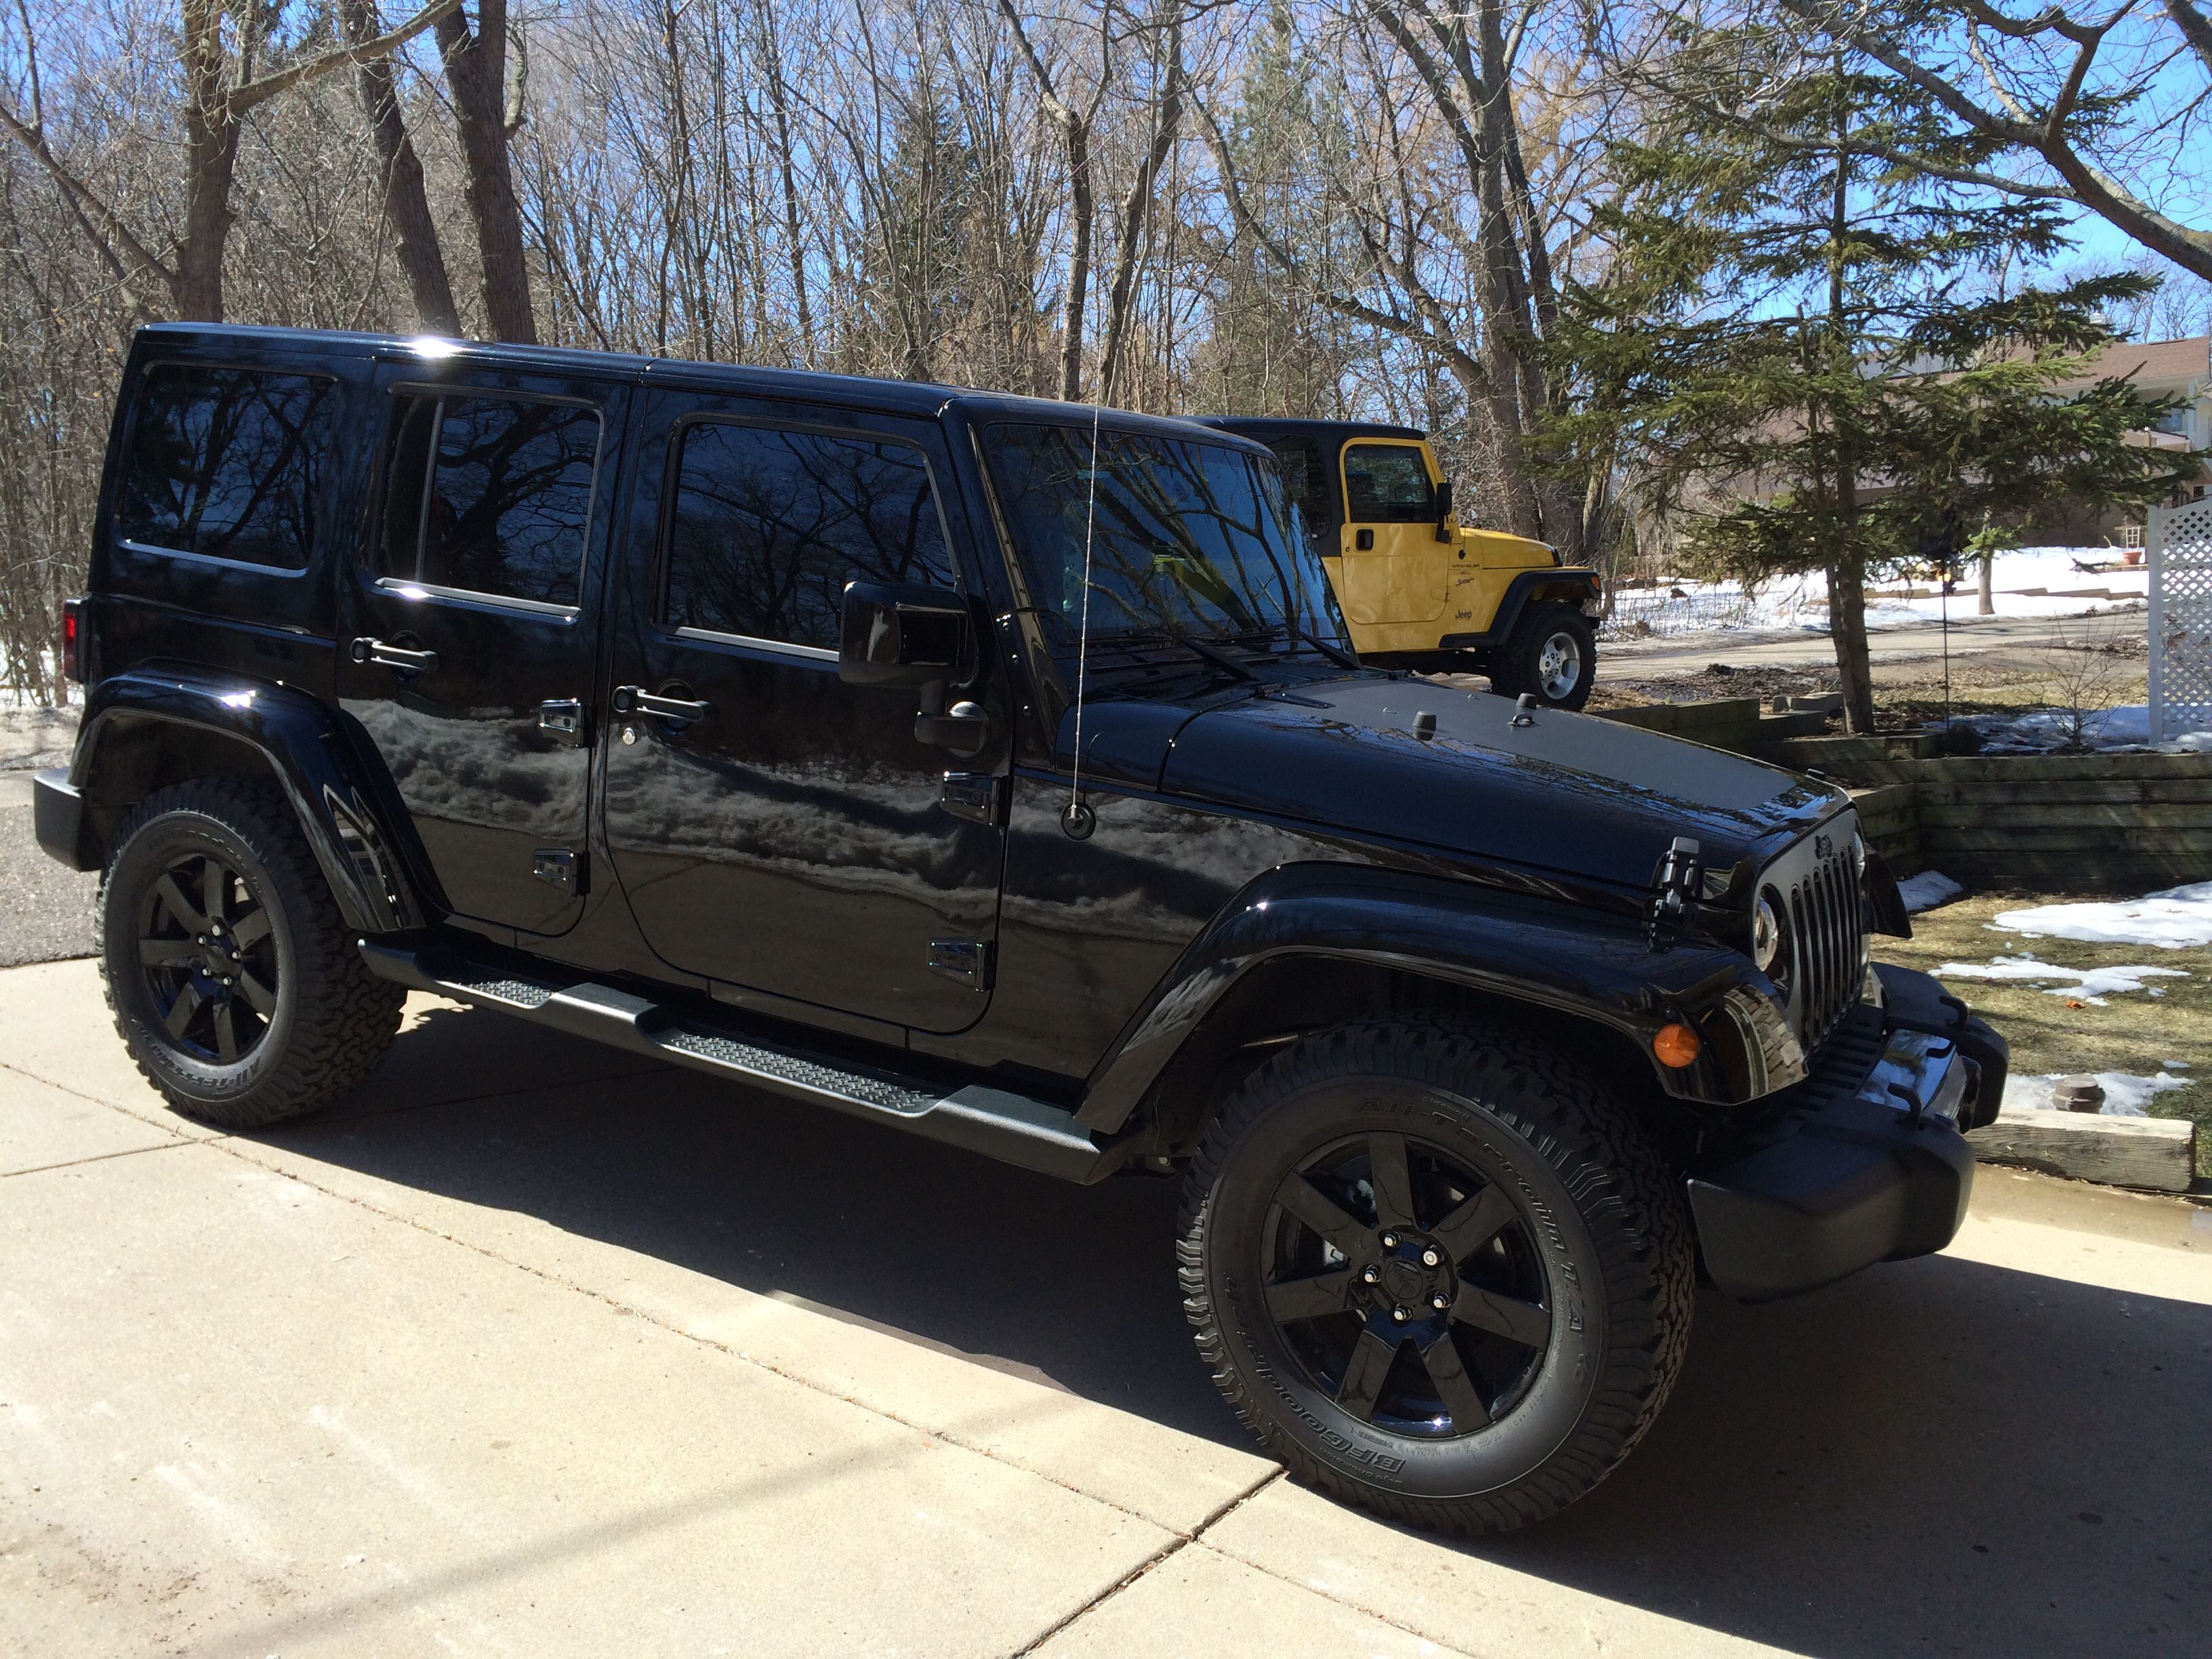 2014 Jeep Wrangler Unlimited Altitude Dream Cars Jeep Jeep Cars Jeep Sahara